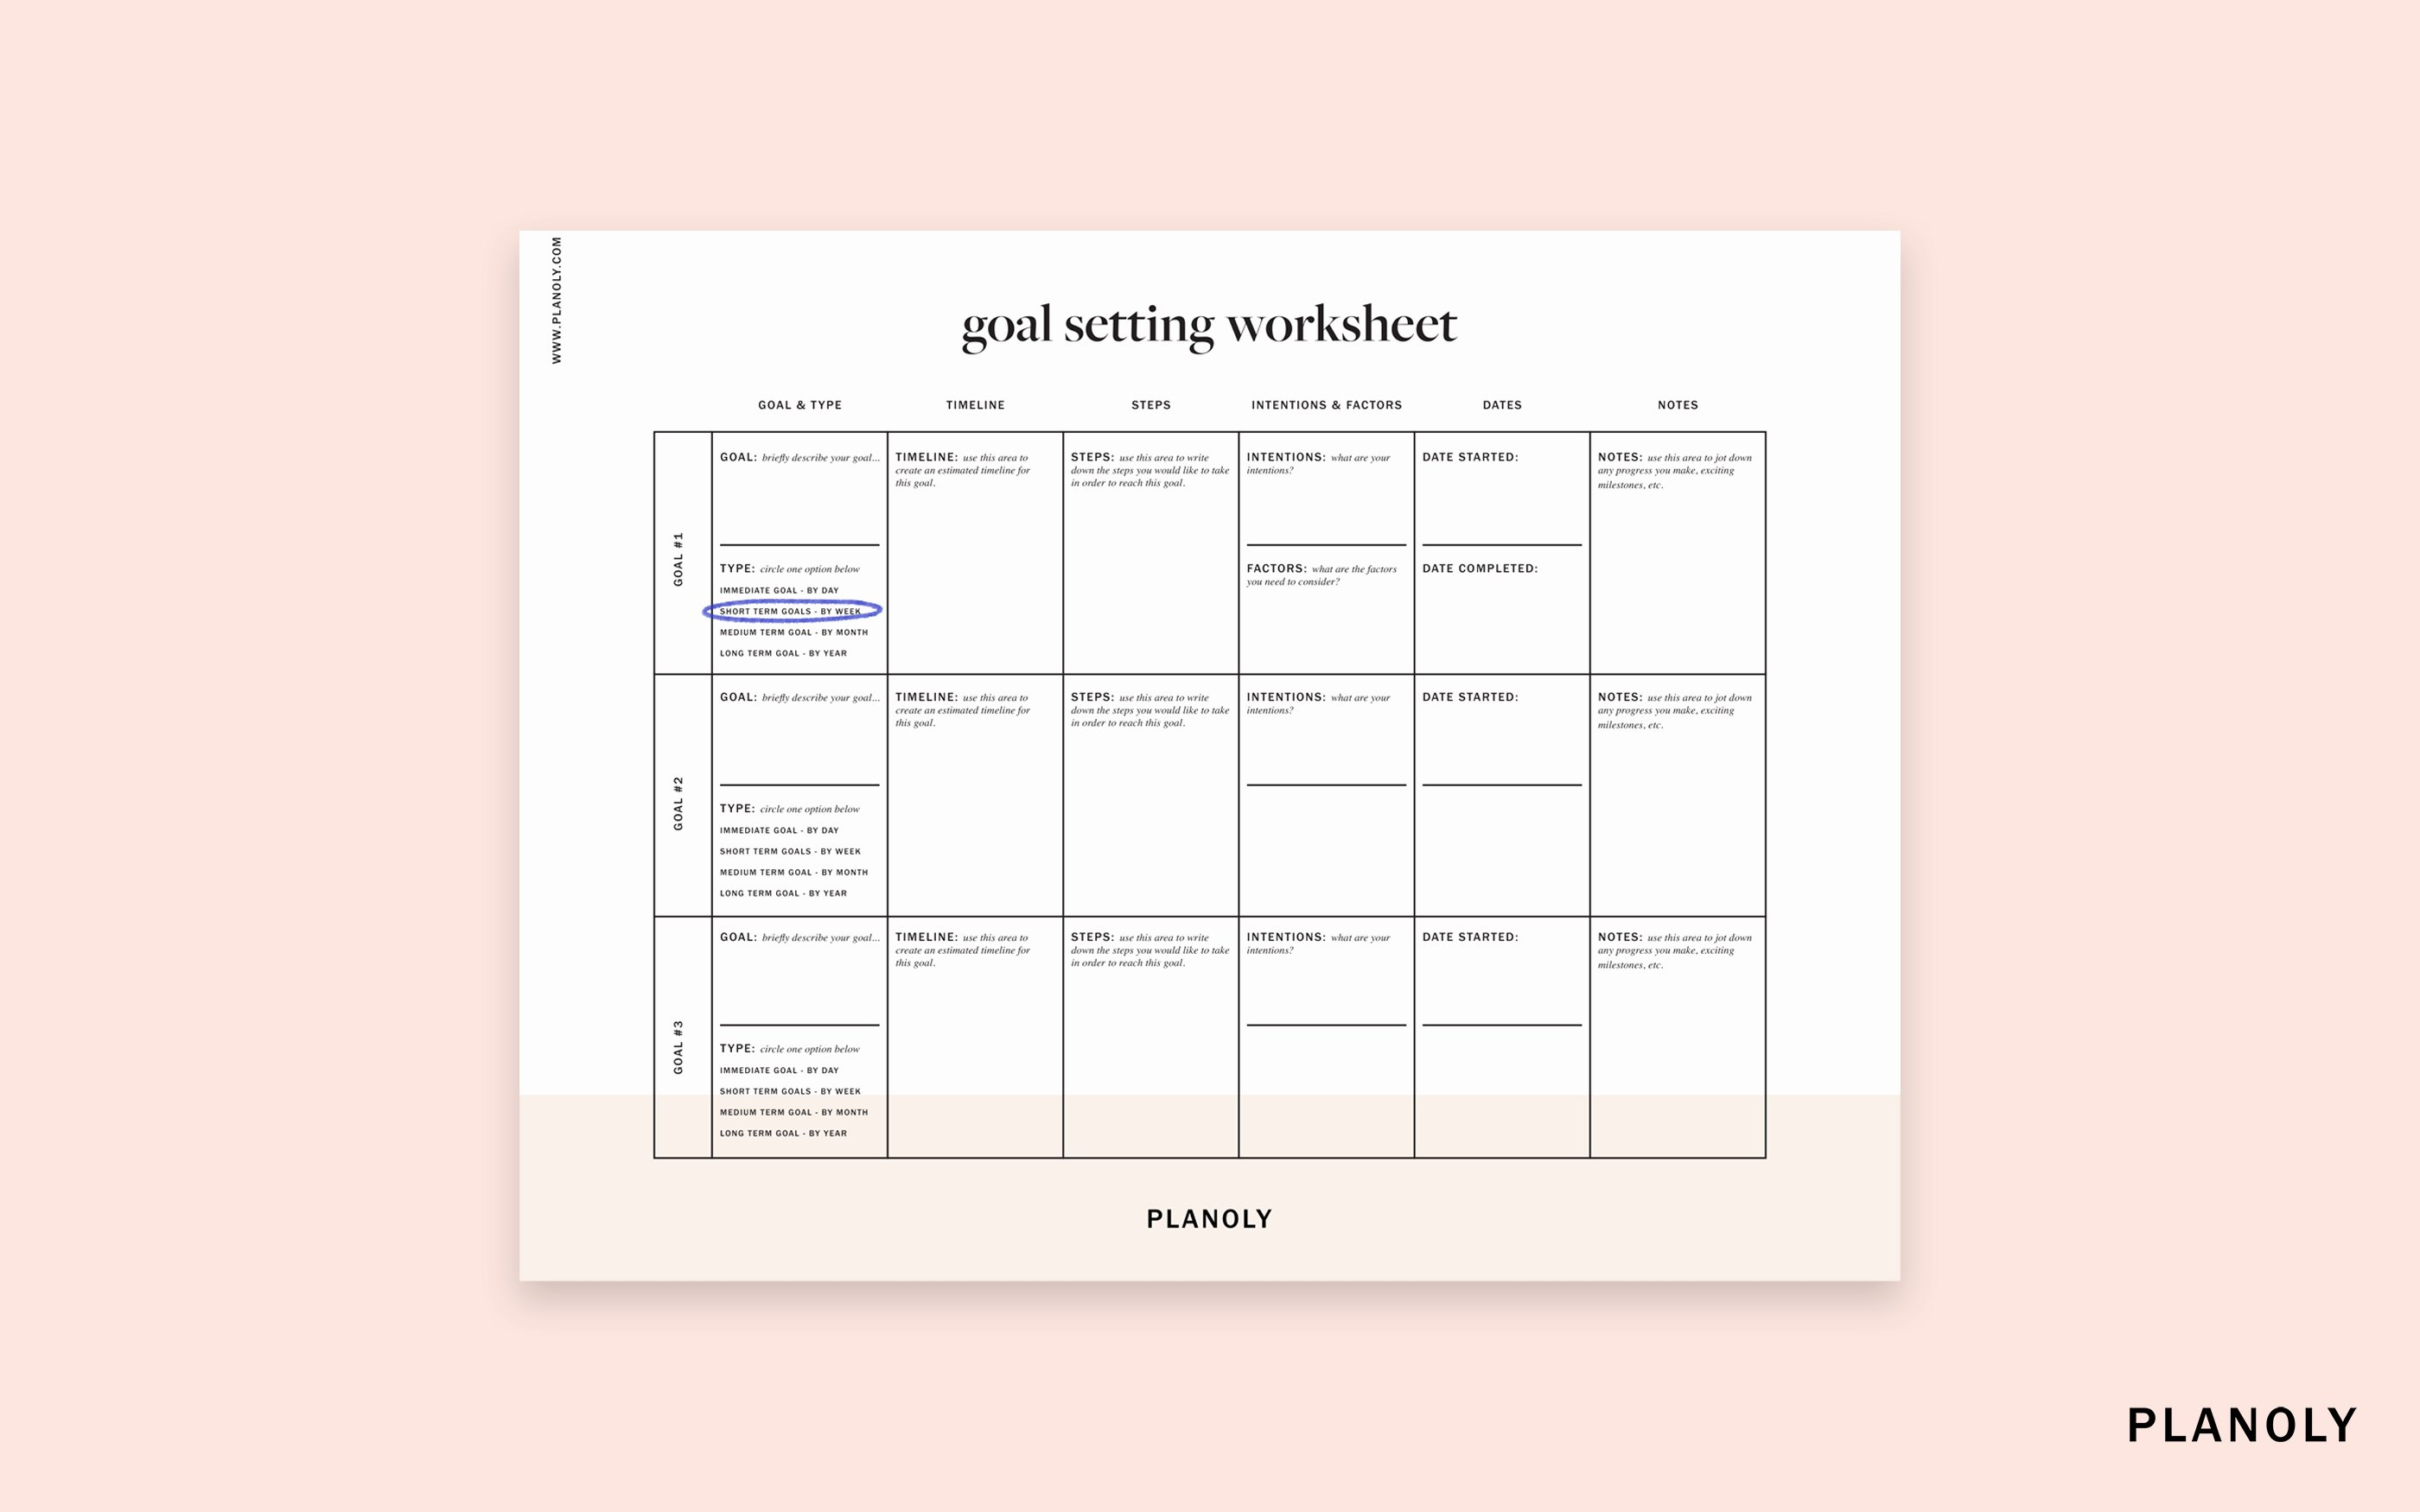 Business Goal Setting Template Beautiful Planoly S Influencer Goal Setting Worksheet Planoly